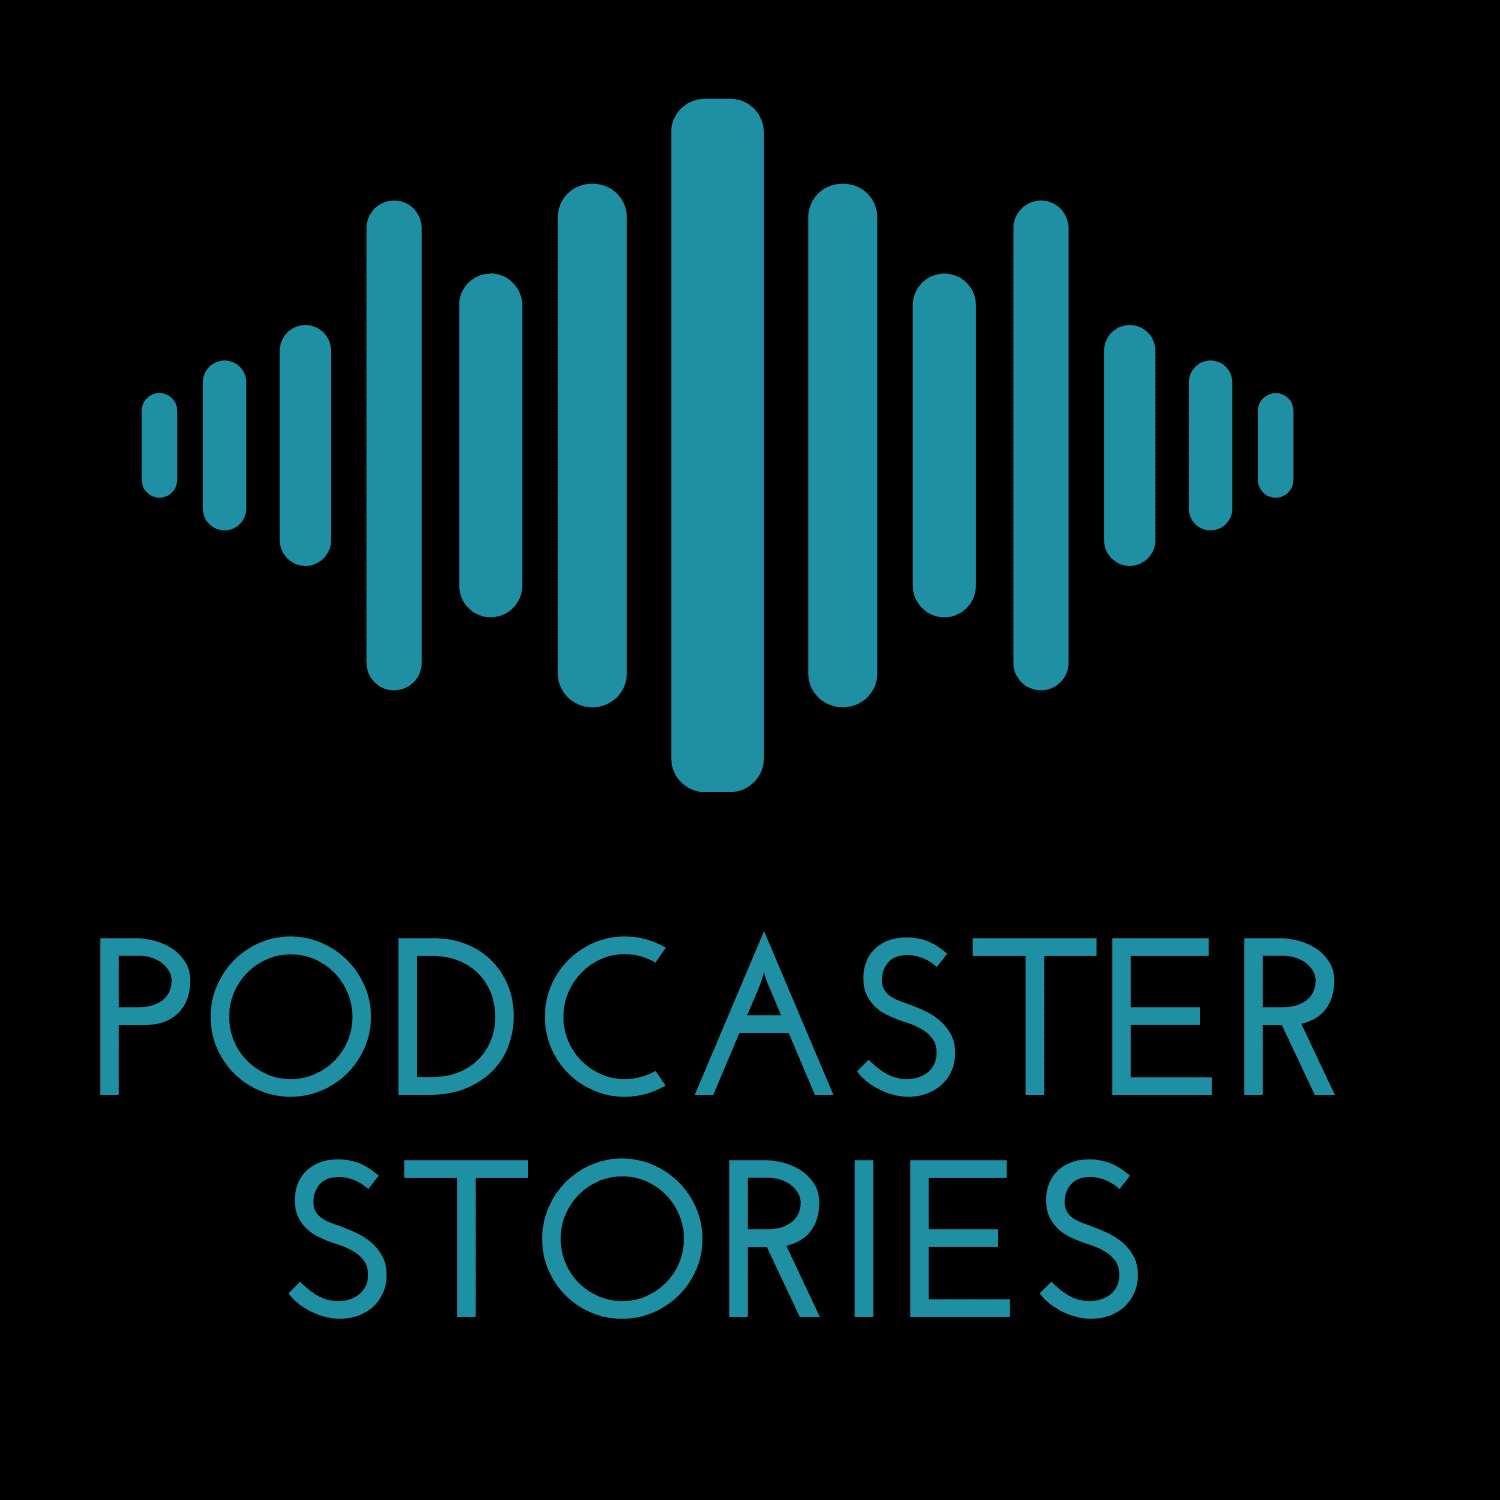 Podcaster Stories | SquadCast.fm Podcast Recording Software